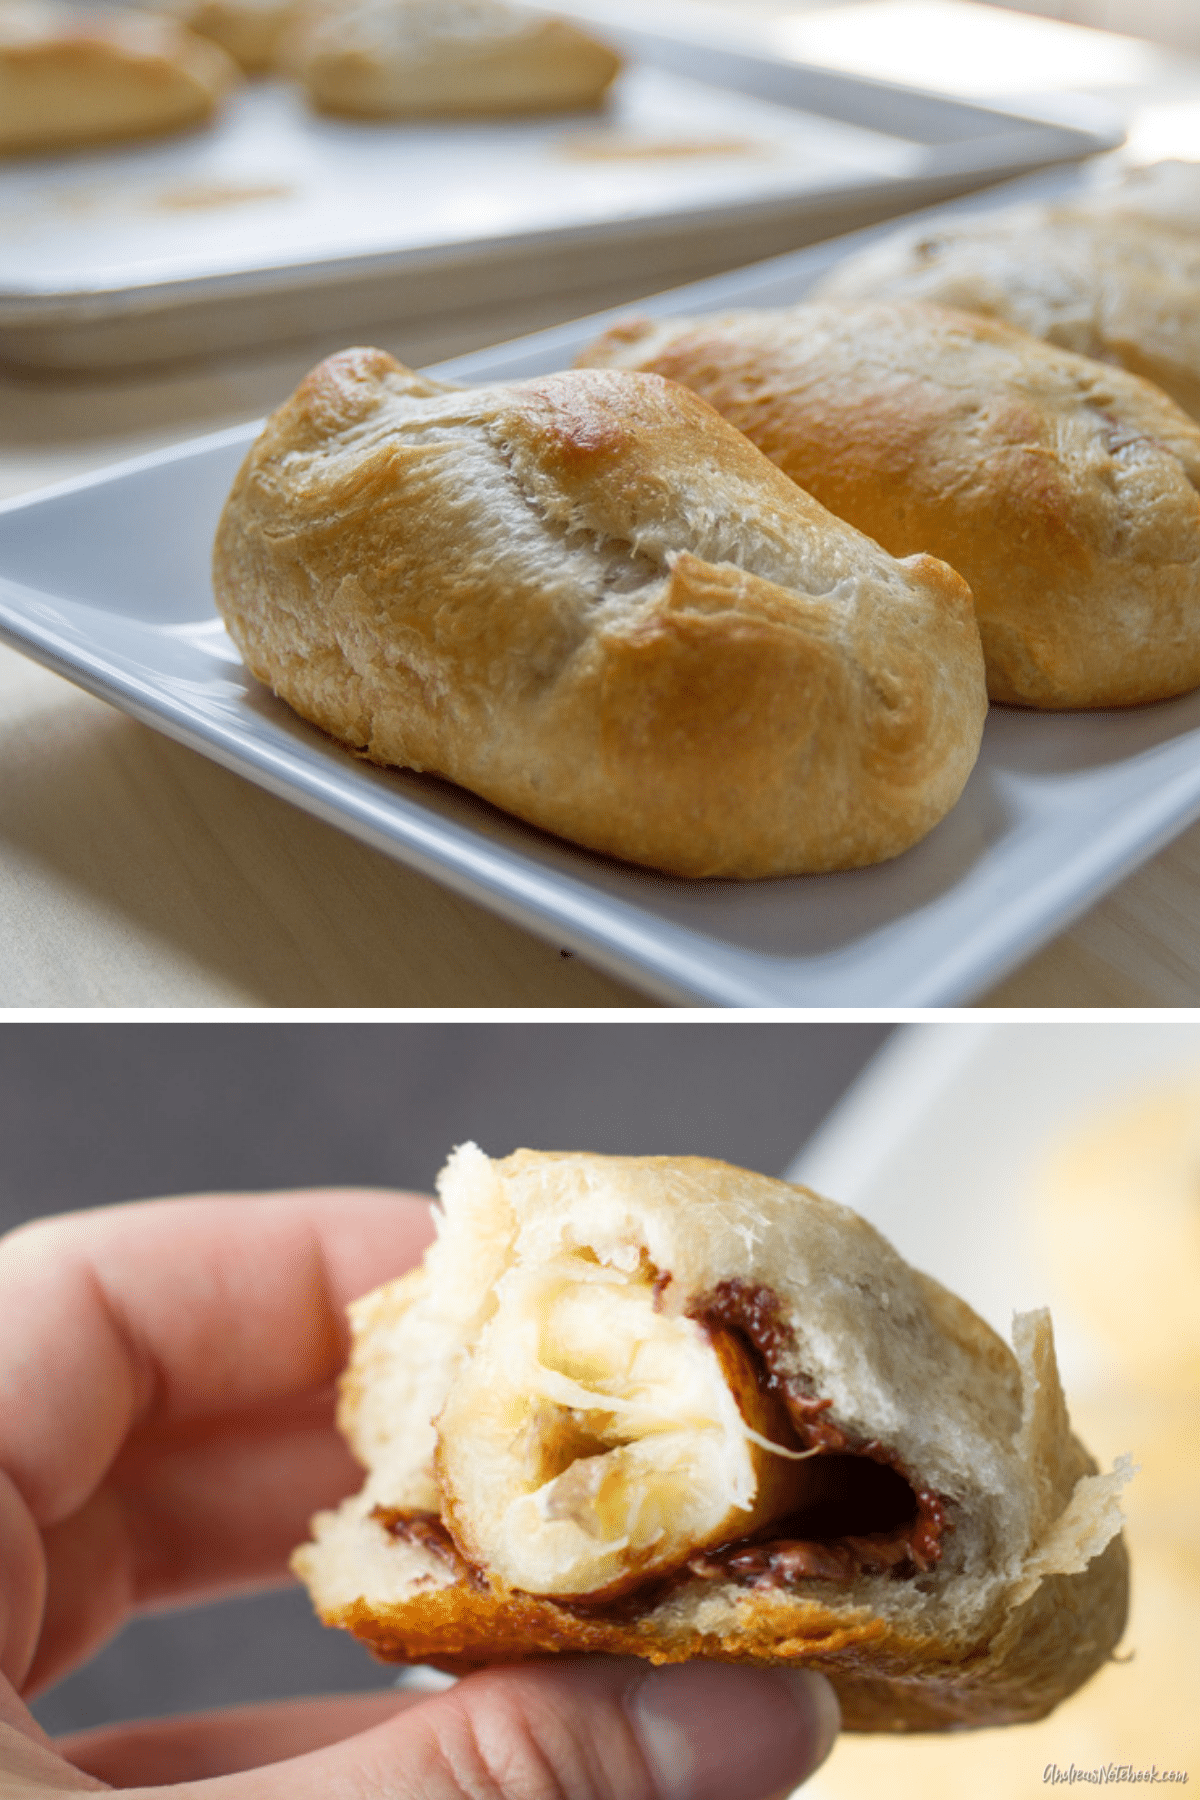 banana nutella roll opened with hands